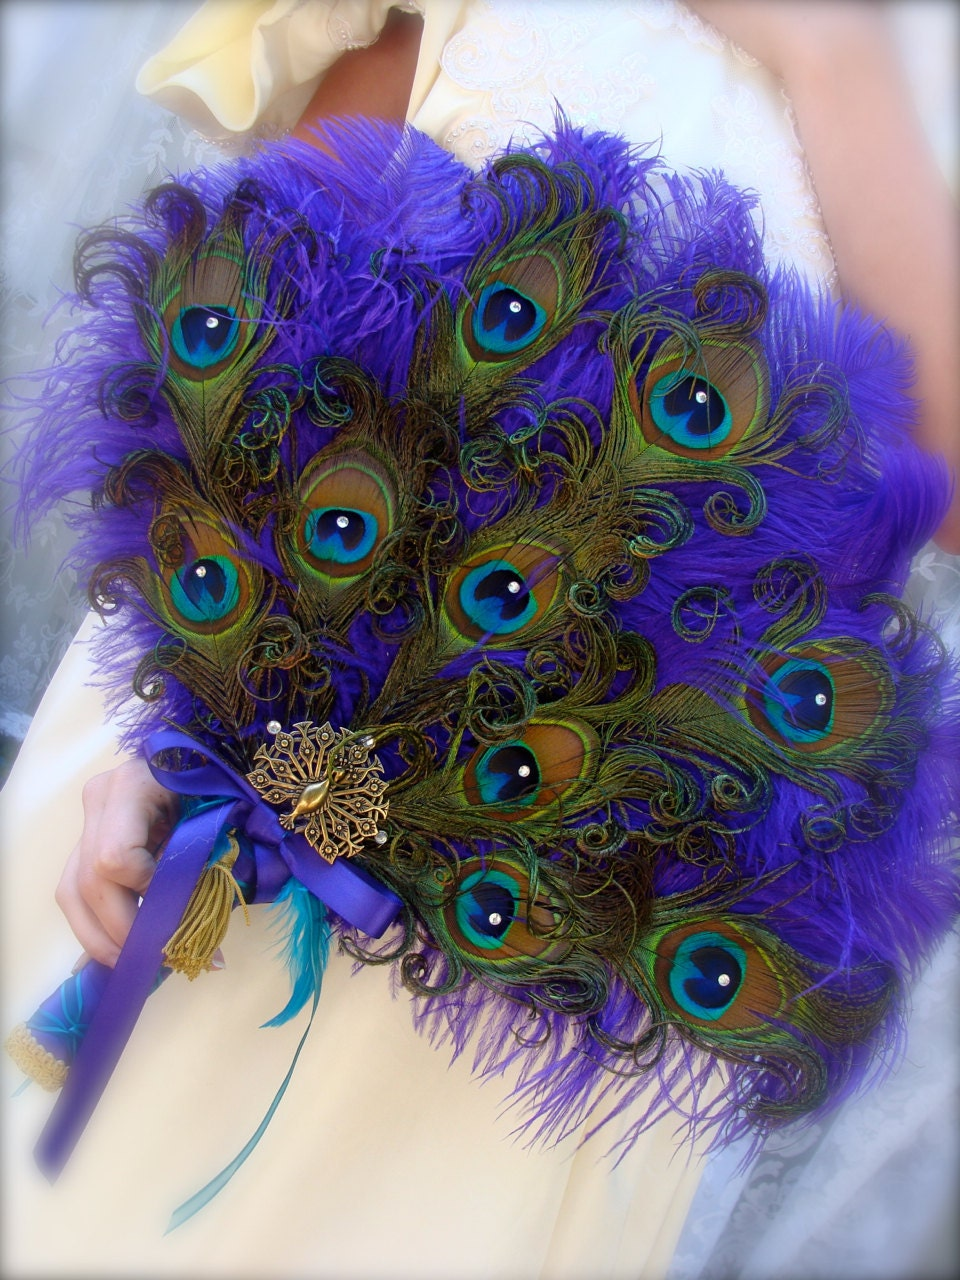 image ivyndell peacock feather bouquet purple green blue